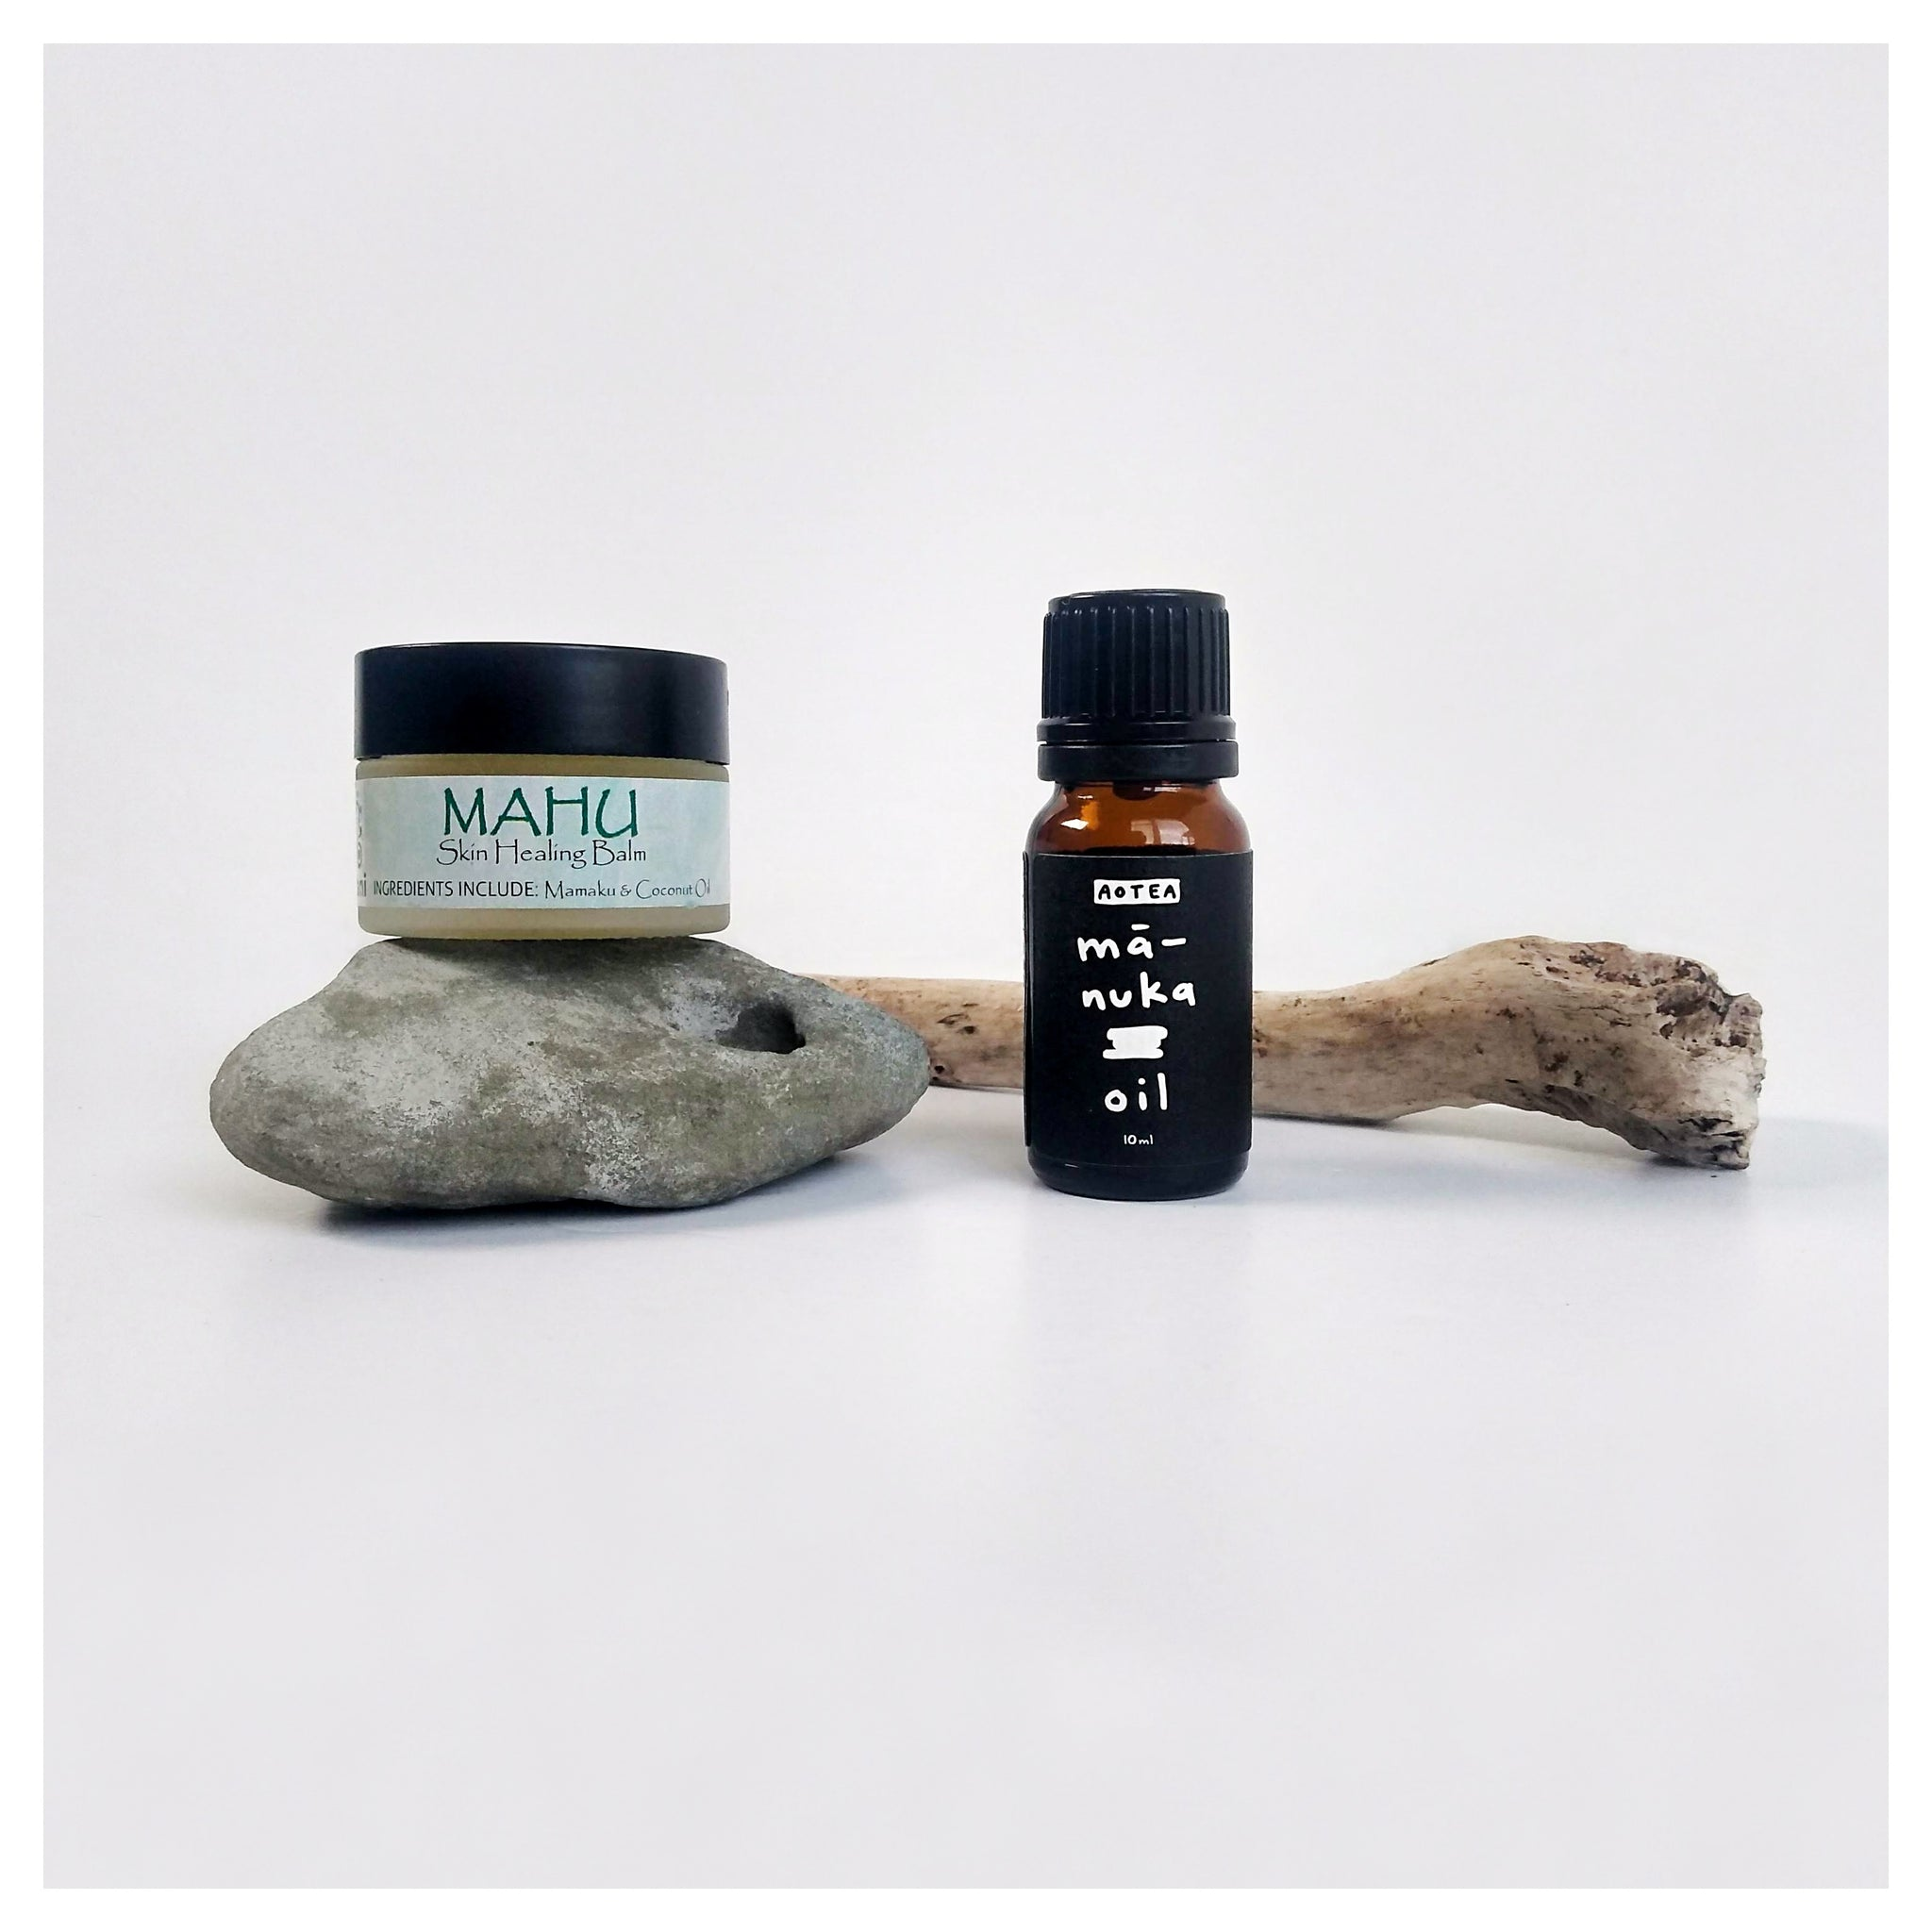 Hauora products (natural skincare) displayed with a stone and stick. The products are a rongoā Māori (rongoā rākau) balm and pure mānuka oil.